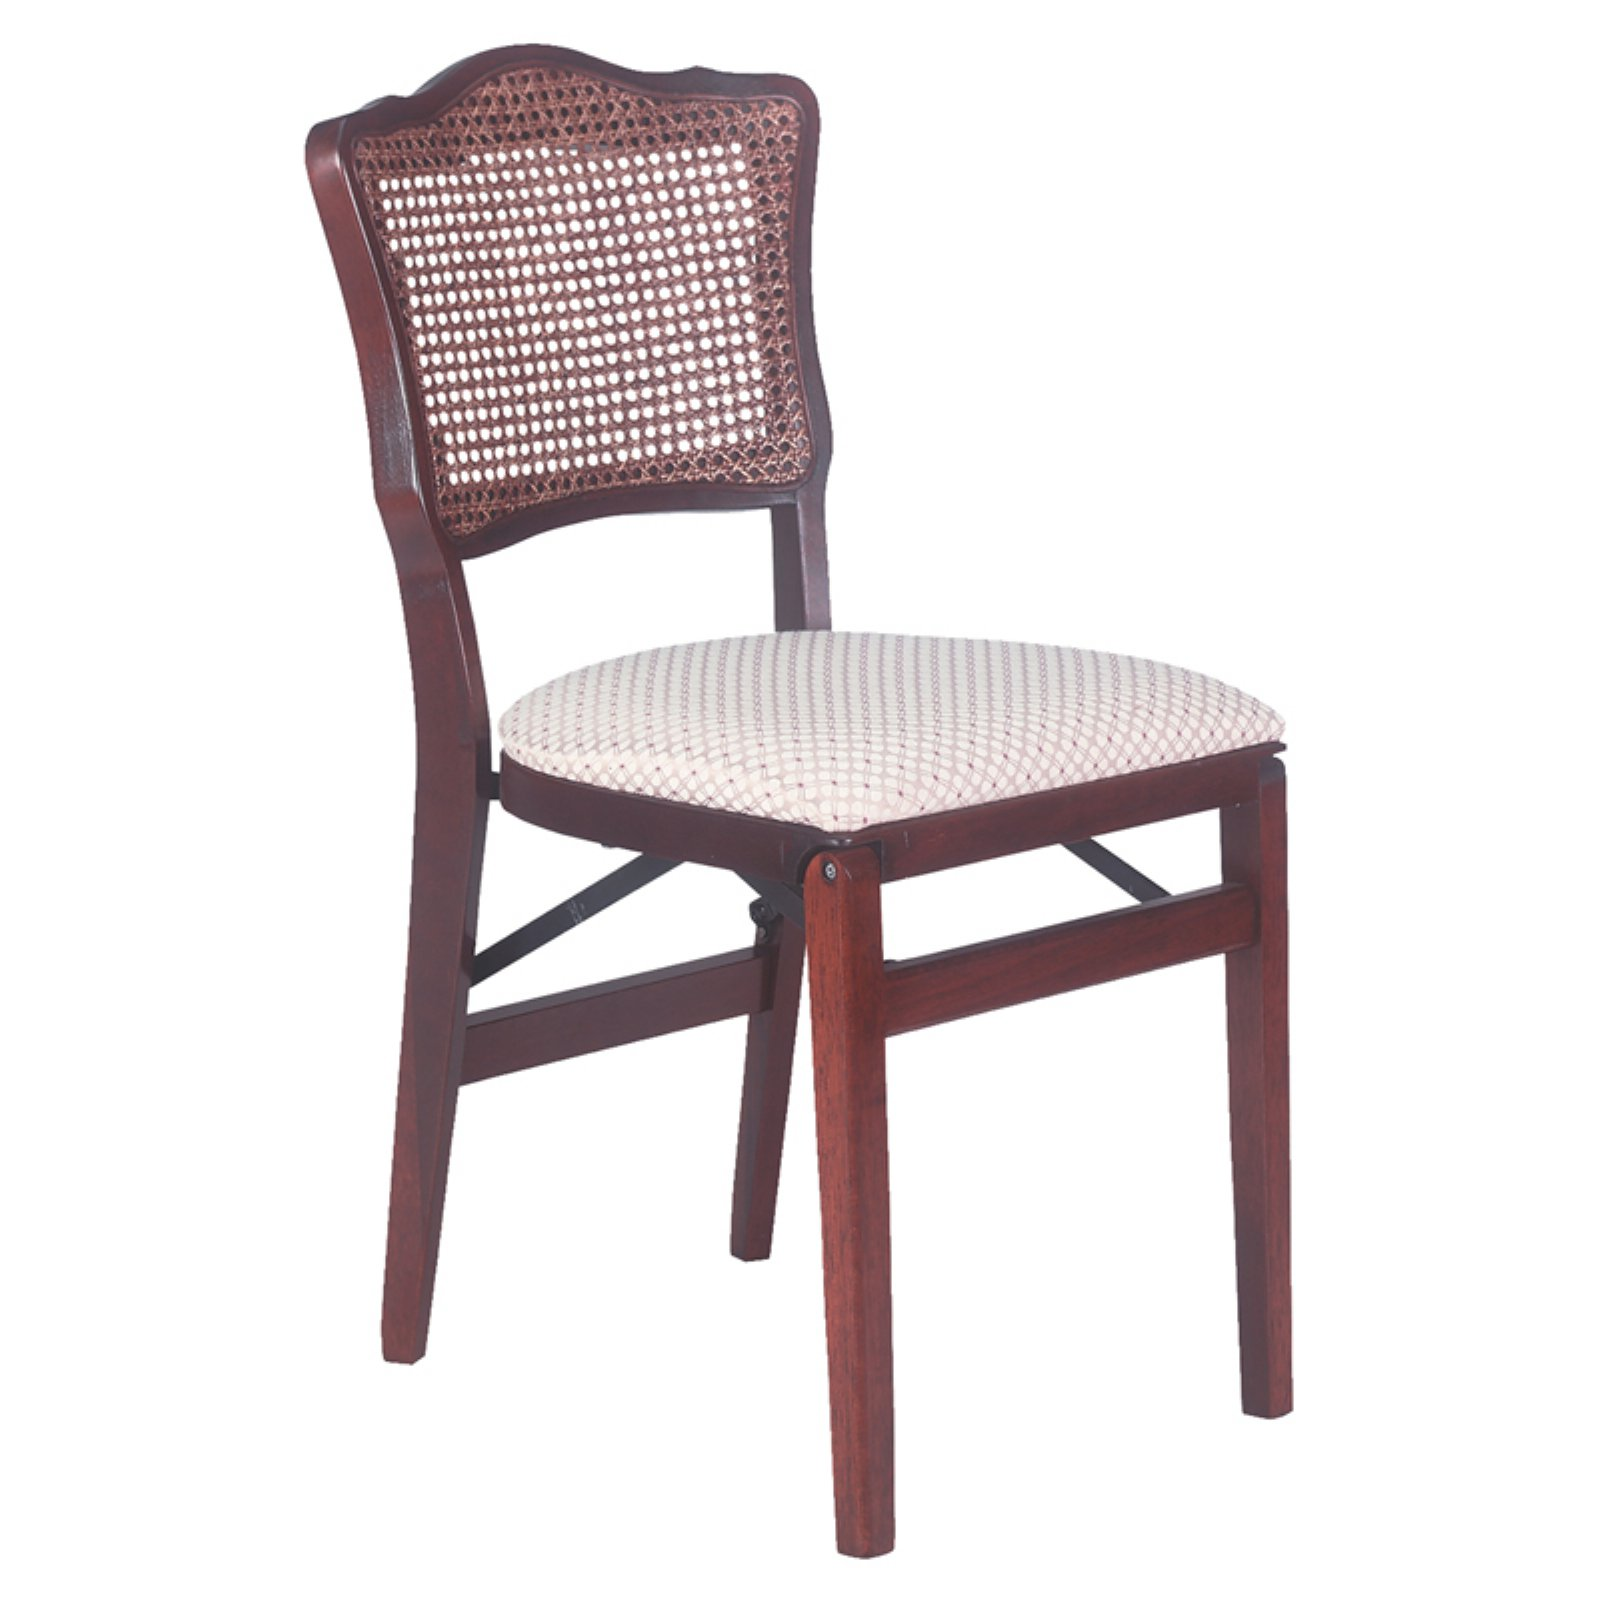 French cane back hardwood folding chair - Light cherry